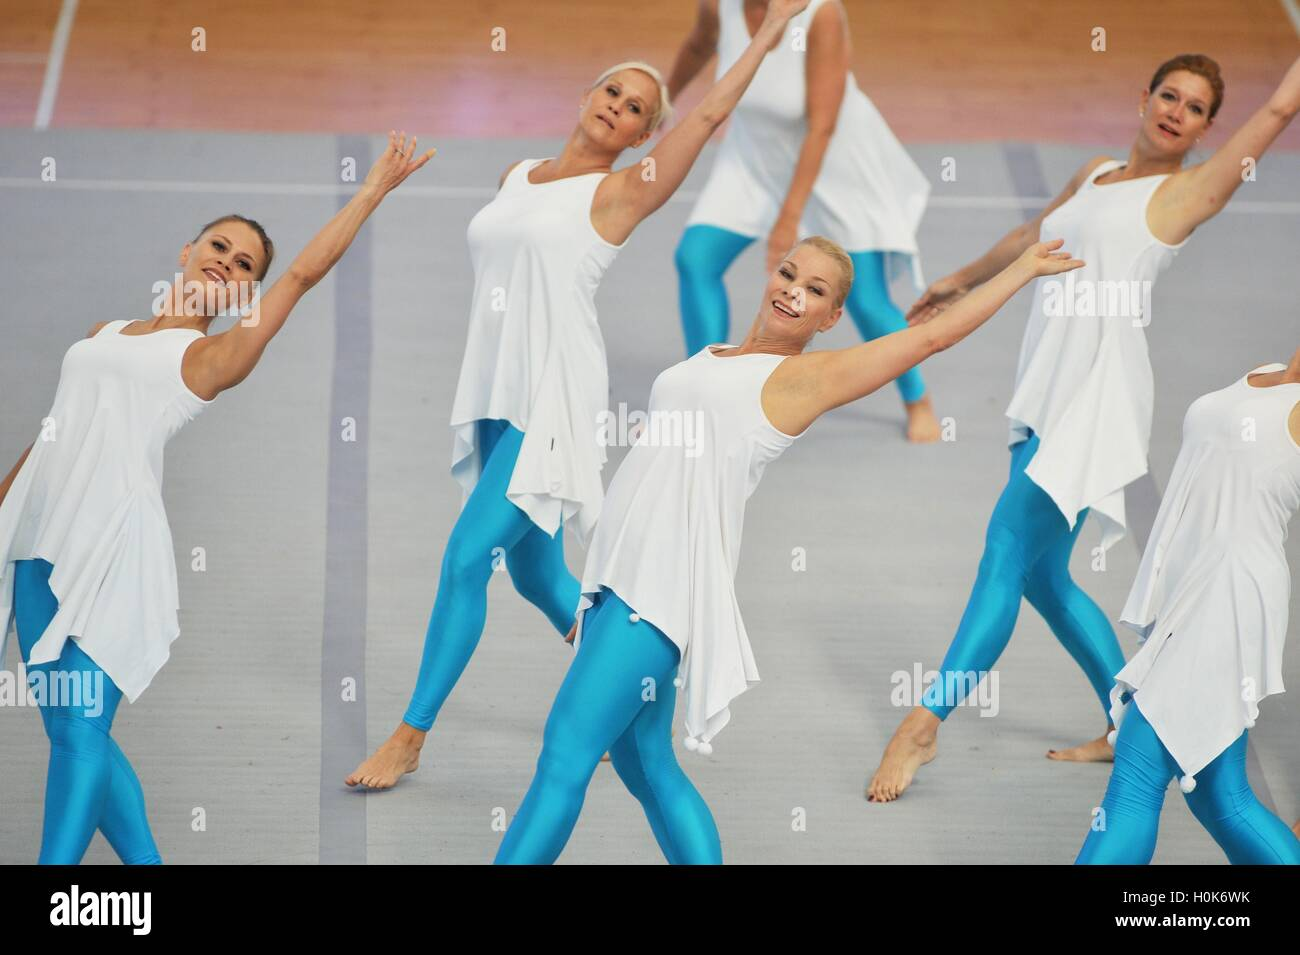 Qingdao, Qingdao, China. 22nd Sep, 2016. Qingdao, CHINA-September 22 2016: (EDITORIAL USE ONLY. CHINA OUT) Aerobics Stock Photo